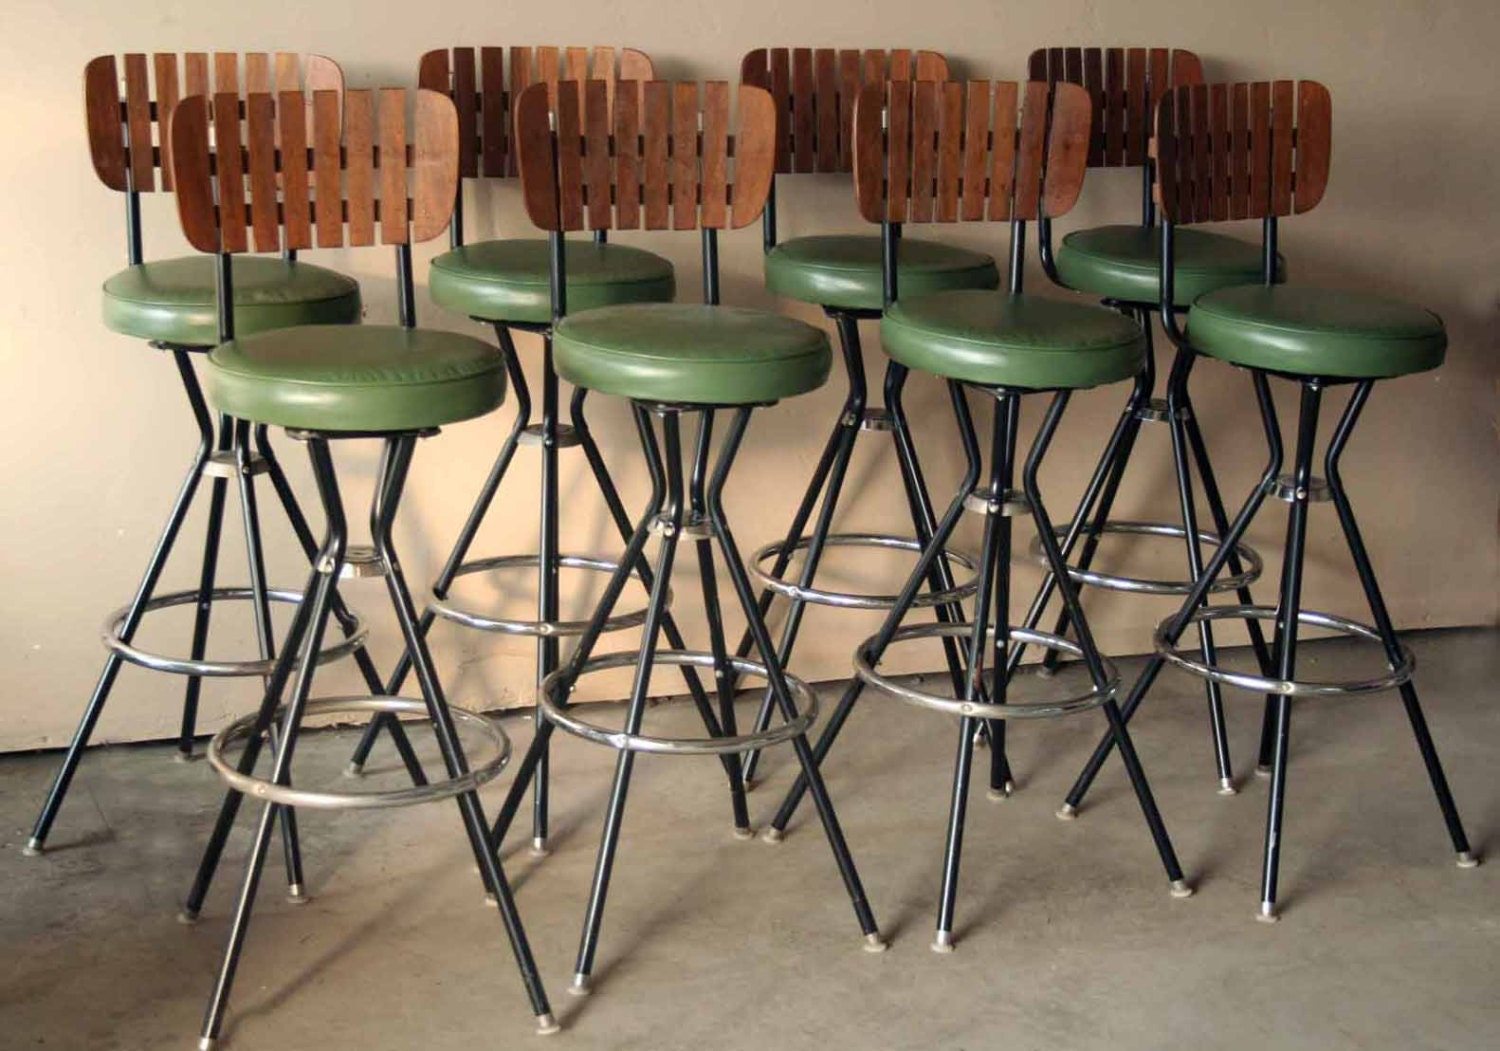 Retro Green And Wooden Bar Stool Slat Back Mid Century